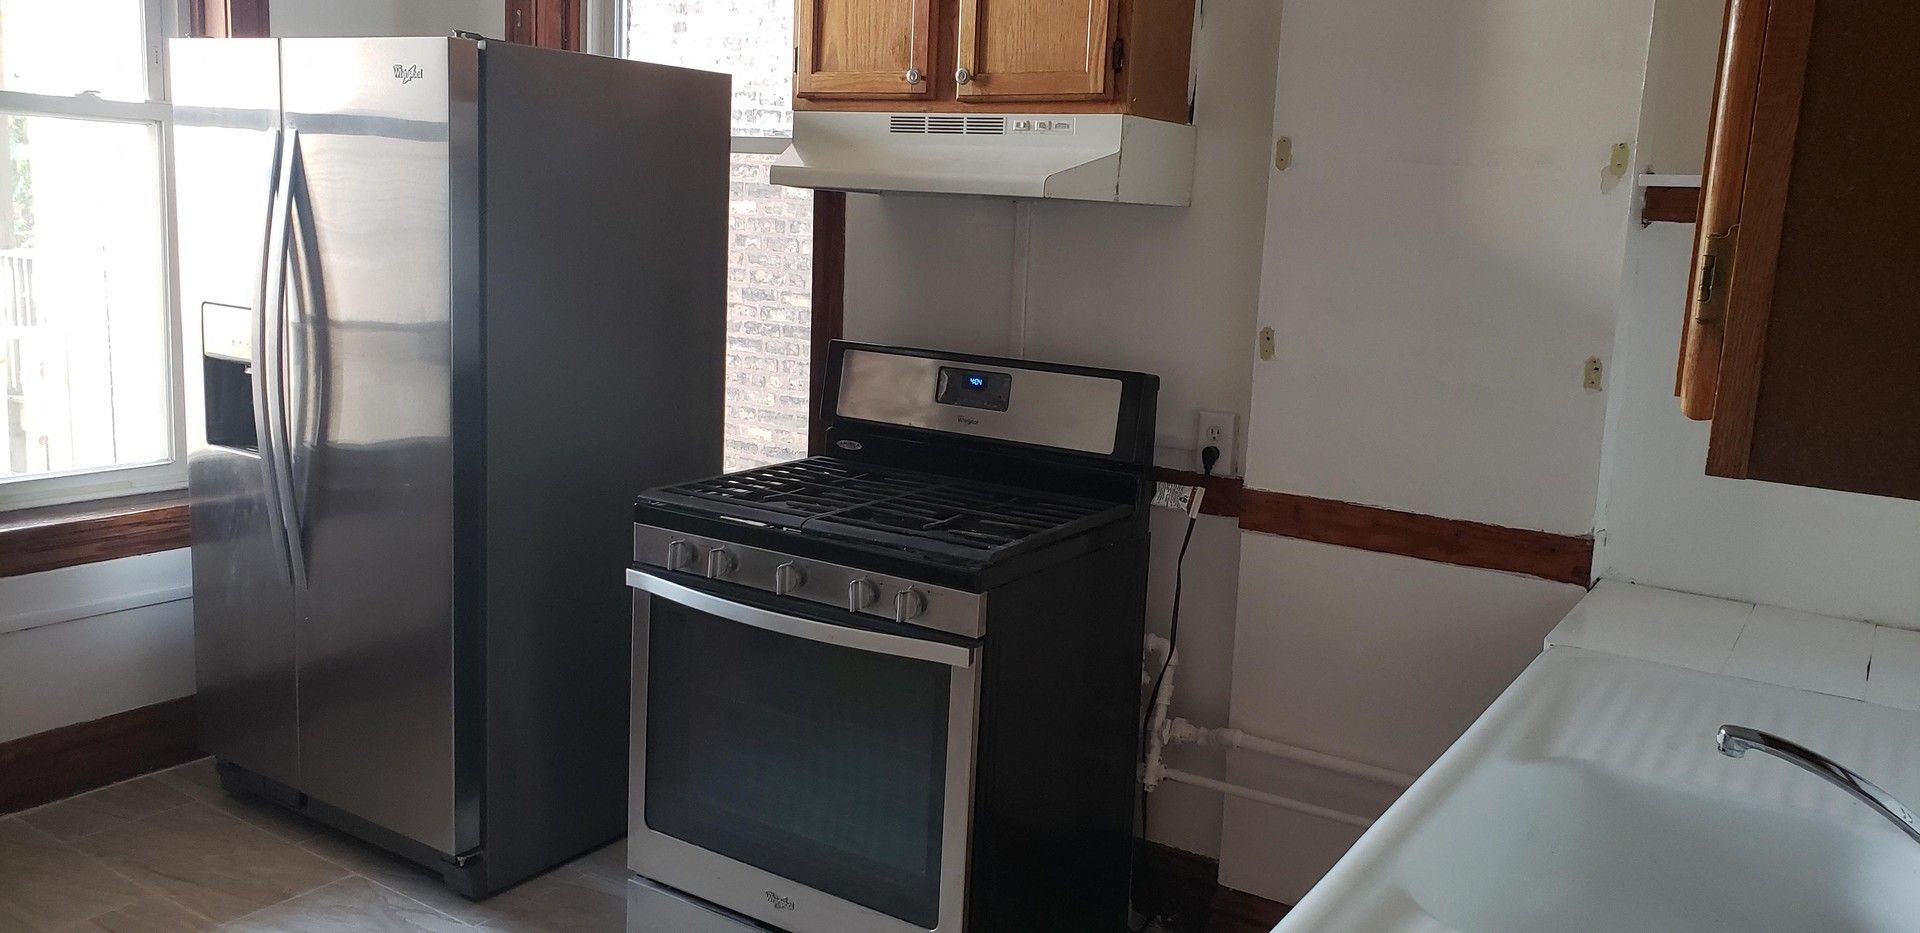 Photo 8: Photos: 2715 Evergreen Avenue Unit 2 in Chicago: CHI - West Town Residential Lease for lease ()  : MLS®# 10877768